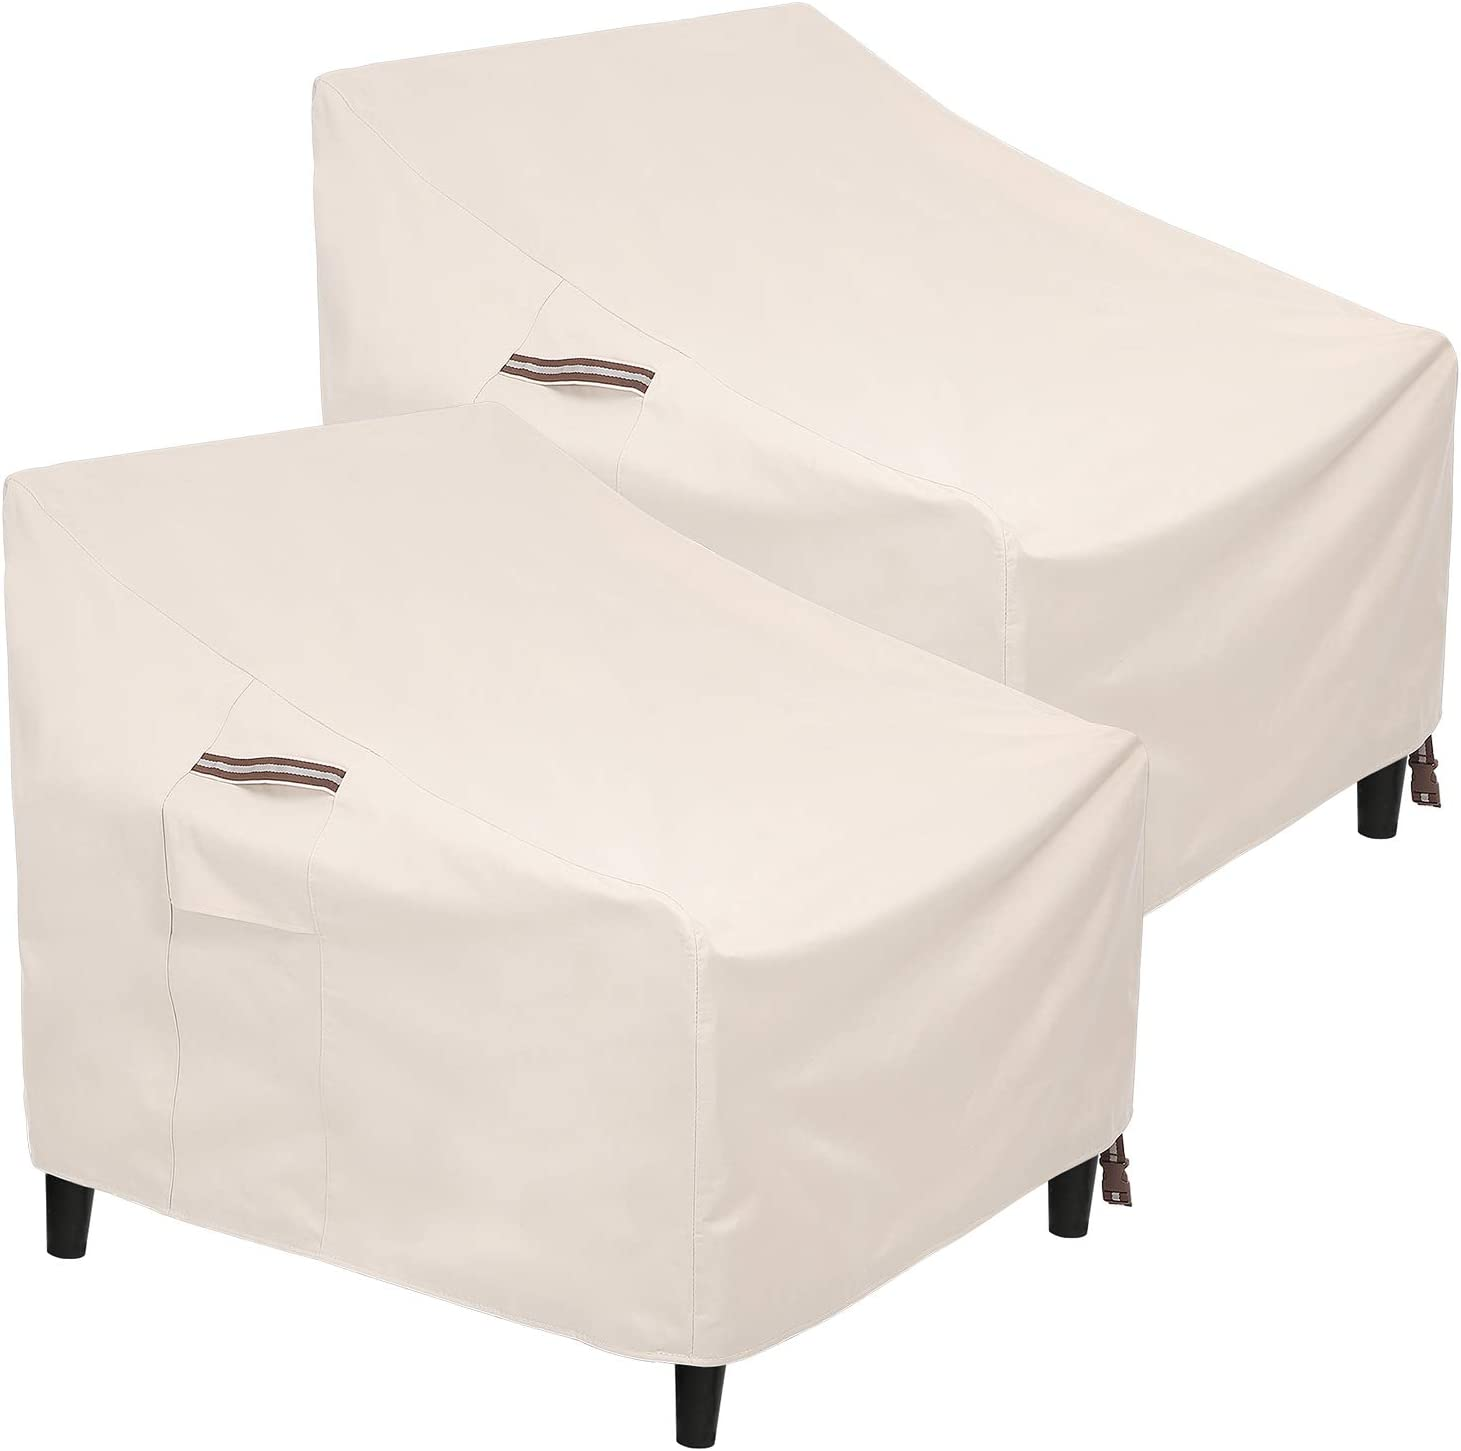 SONGMICS Patio Chair Covers, Set of 2, Heavy Duty Patio Chair Covers, 600D Waterproof Protective Covers, for Outdoor Garden Deep Seat Chair, 31.9 x 37 x 35.8/19.3 Inches, Beige UGCC009M02